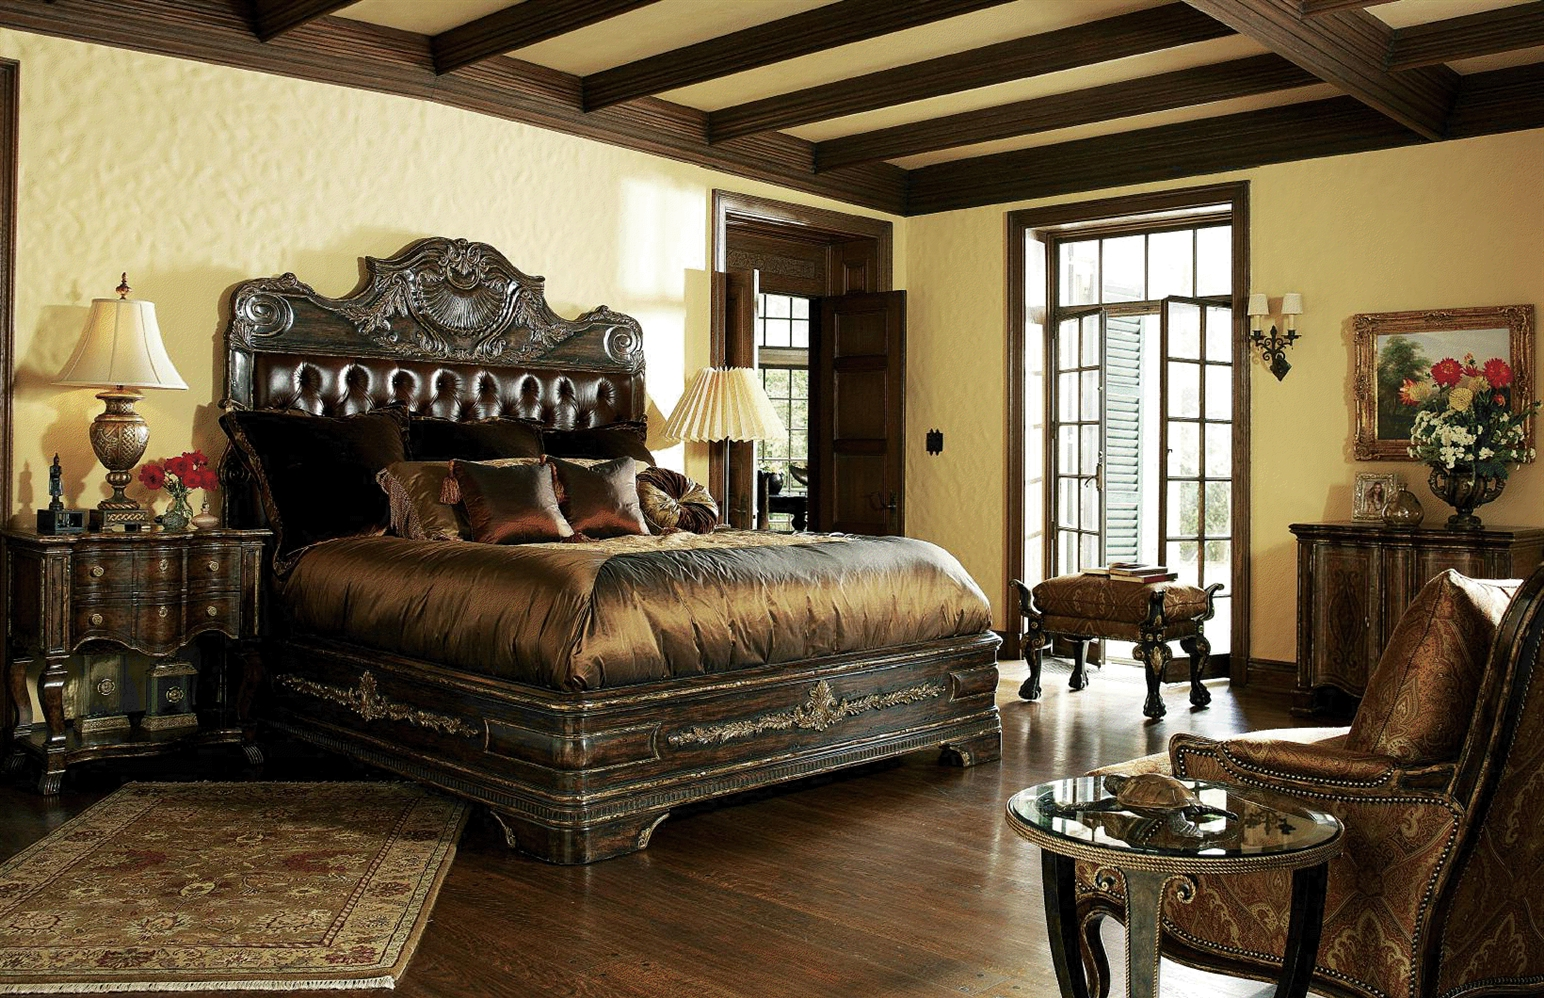 Queen And King Sized Beds 1 High End Master Bedroom Set Carvings Tufted Leather Headboard